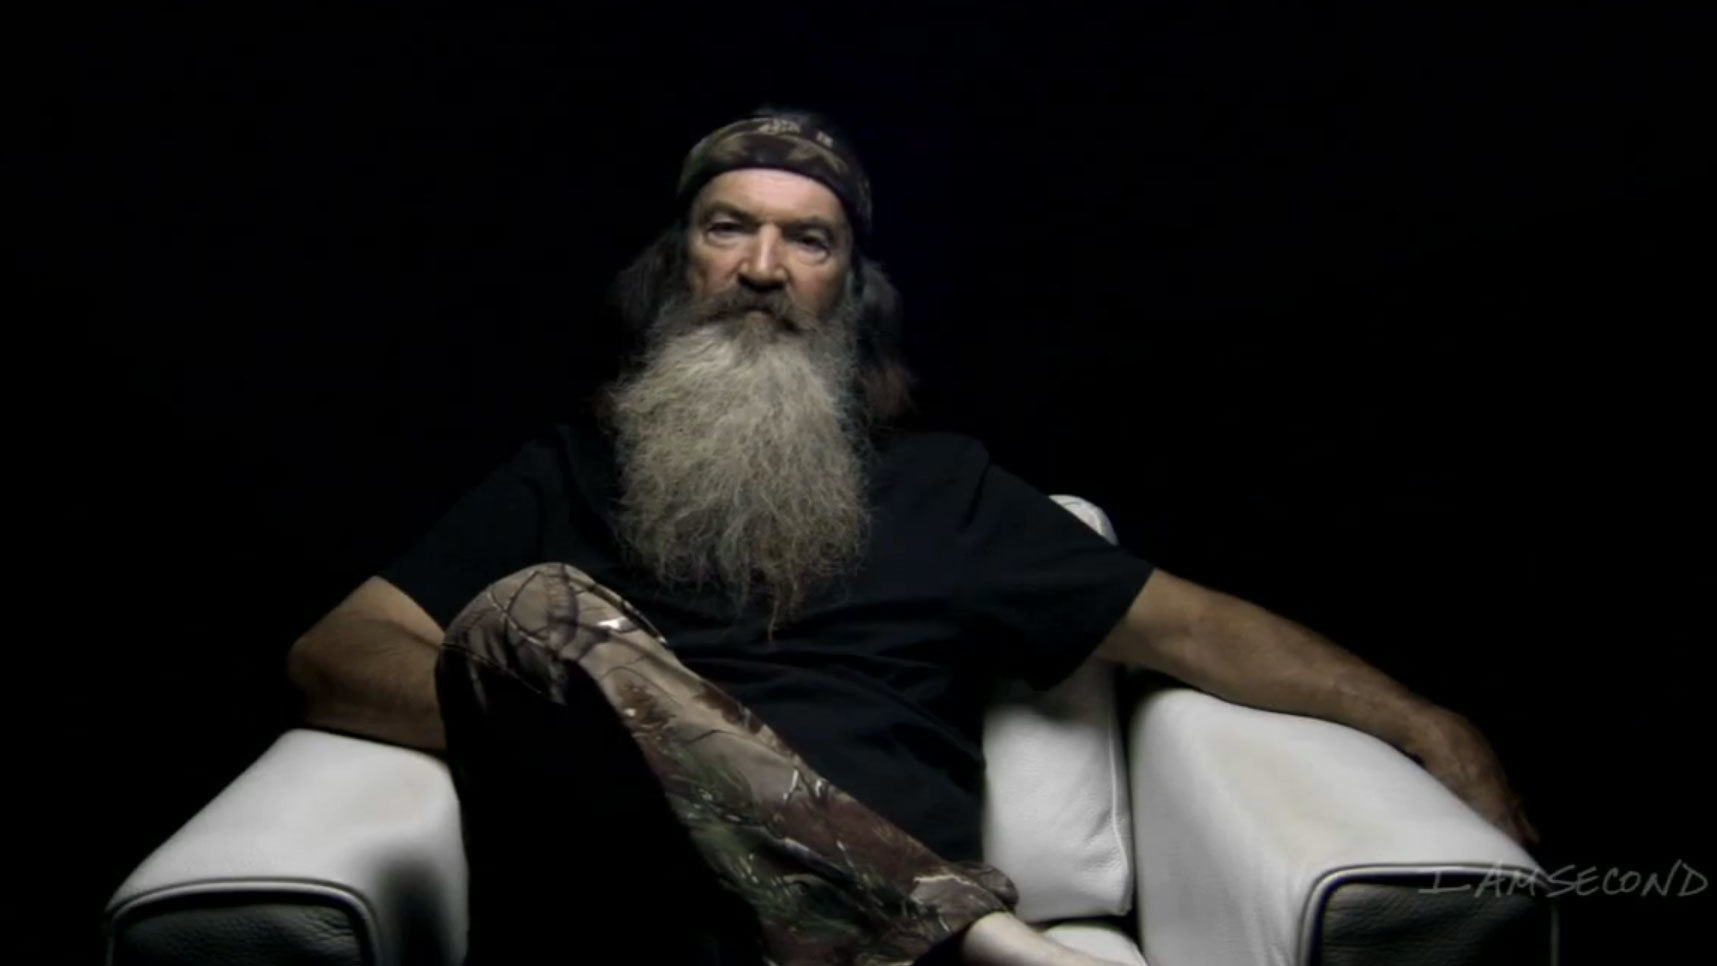 The Duck Dynasty Patriarch: Founder, Phil Robertson